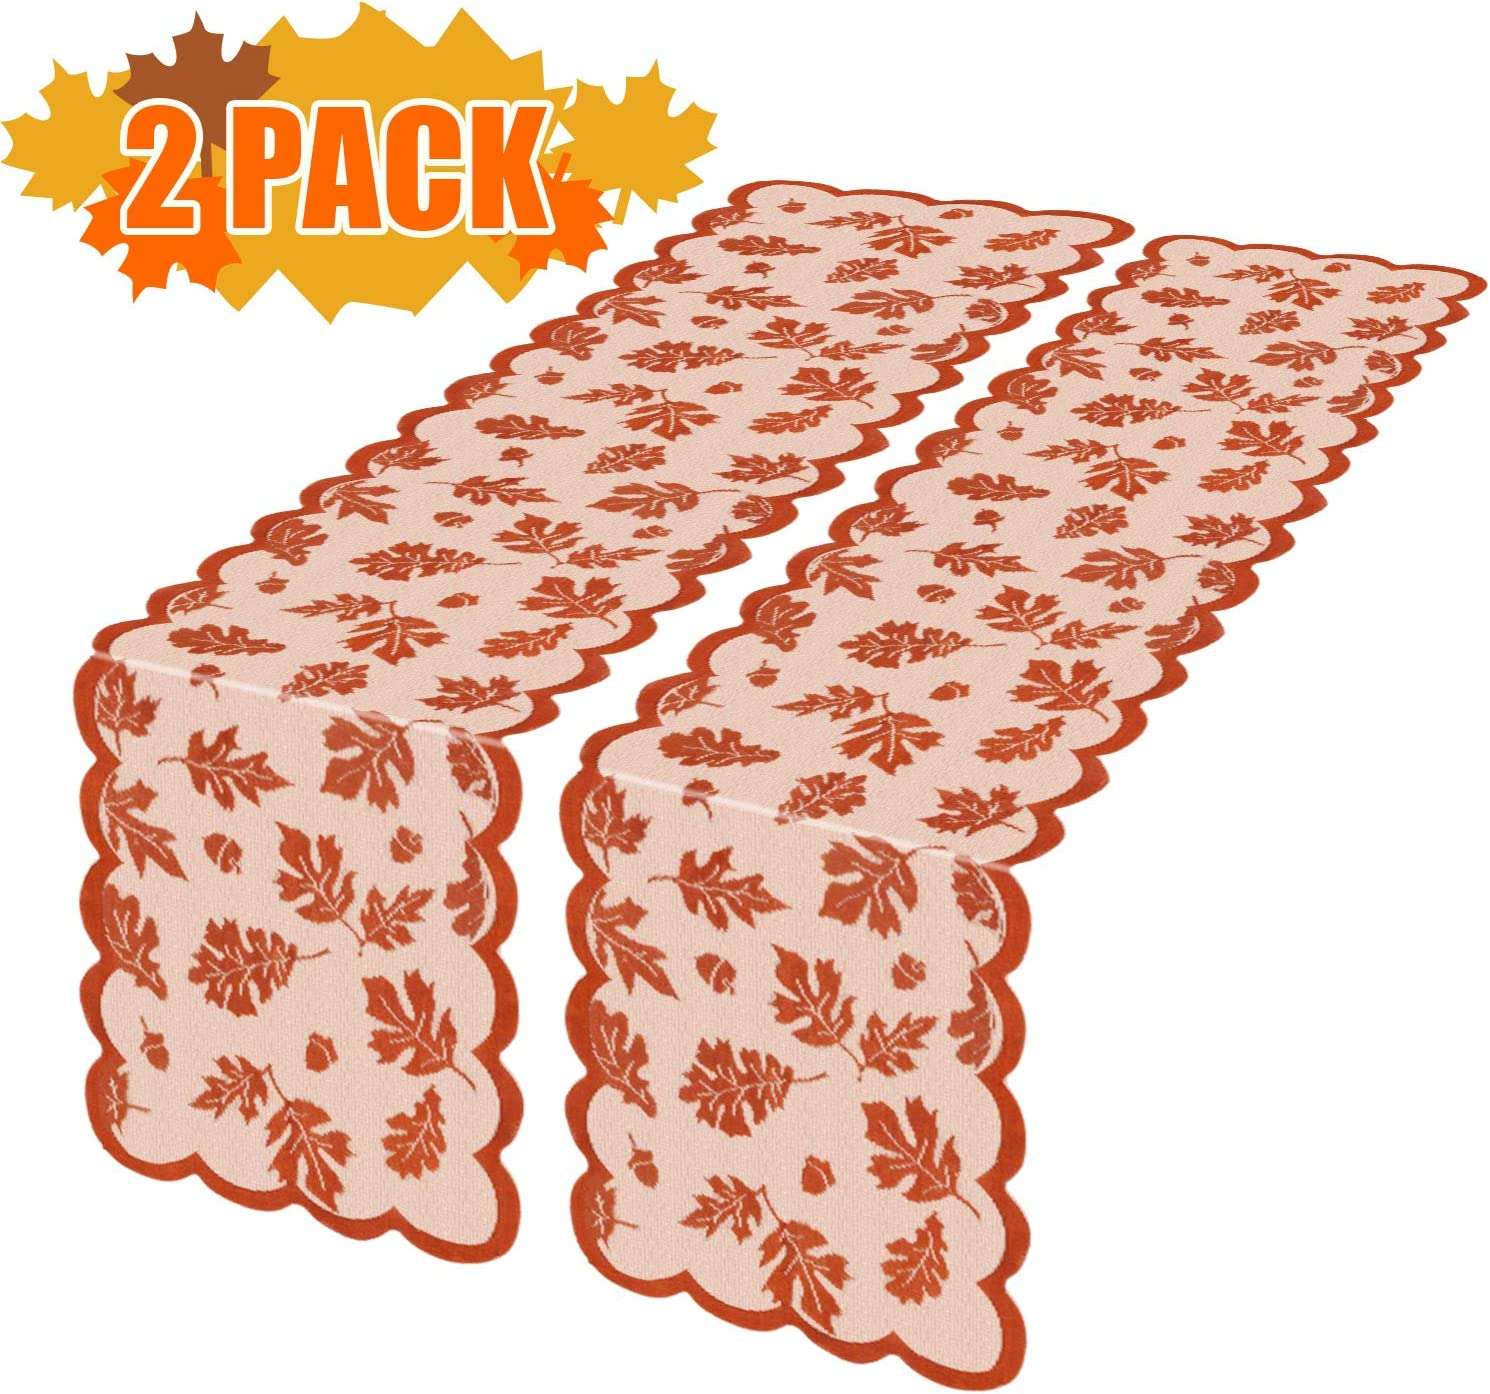 Thanksgiving Table Runner with Maple Leaves, 2 Pack Fall Harvest Lace Dinner Table Decorations for Thanksgiving Party and Daily Use-Coffee Table,Outdoor Patio Table,Dessert Table etc,13 X 72 Inch…: Home & Kitchen